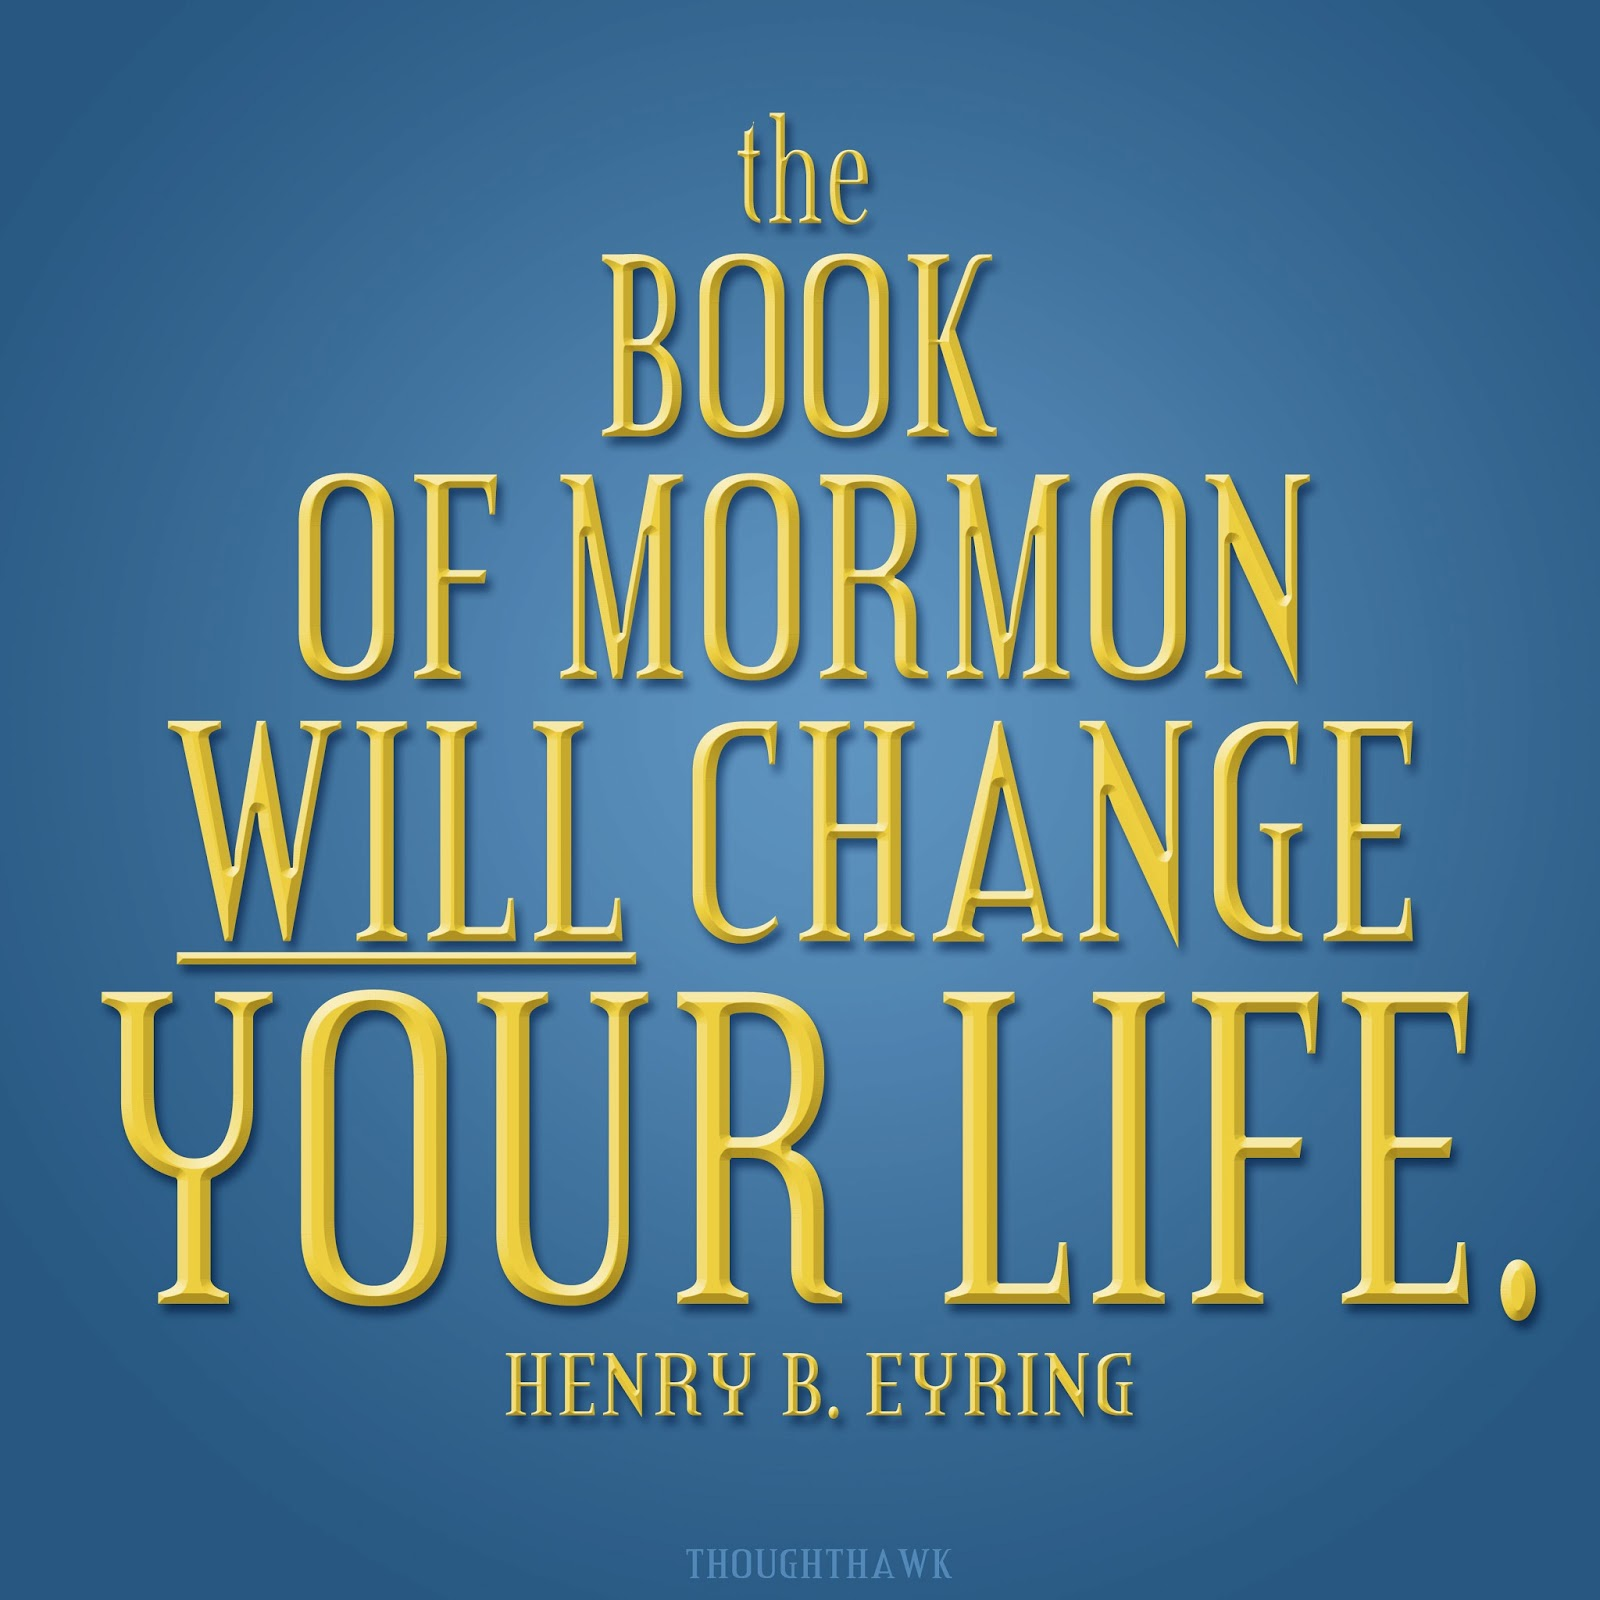 Inspirational Book Of Mormon Quotes: Lds Quotes On Life. QuotesGram